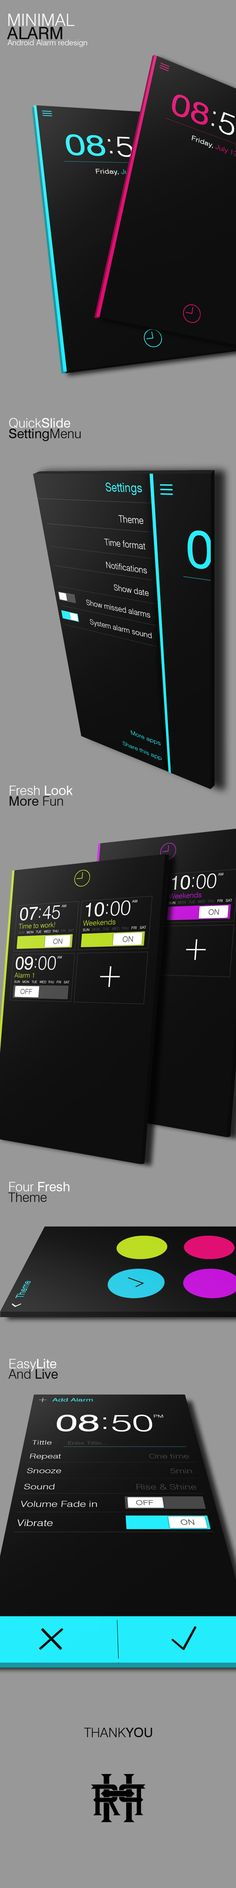 Minimal Alarm - Android Alarm Redesign by Rendy Praditya, via Behance